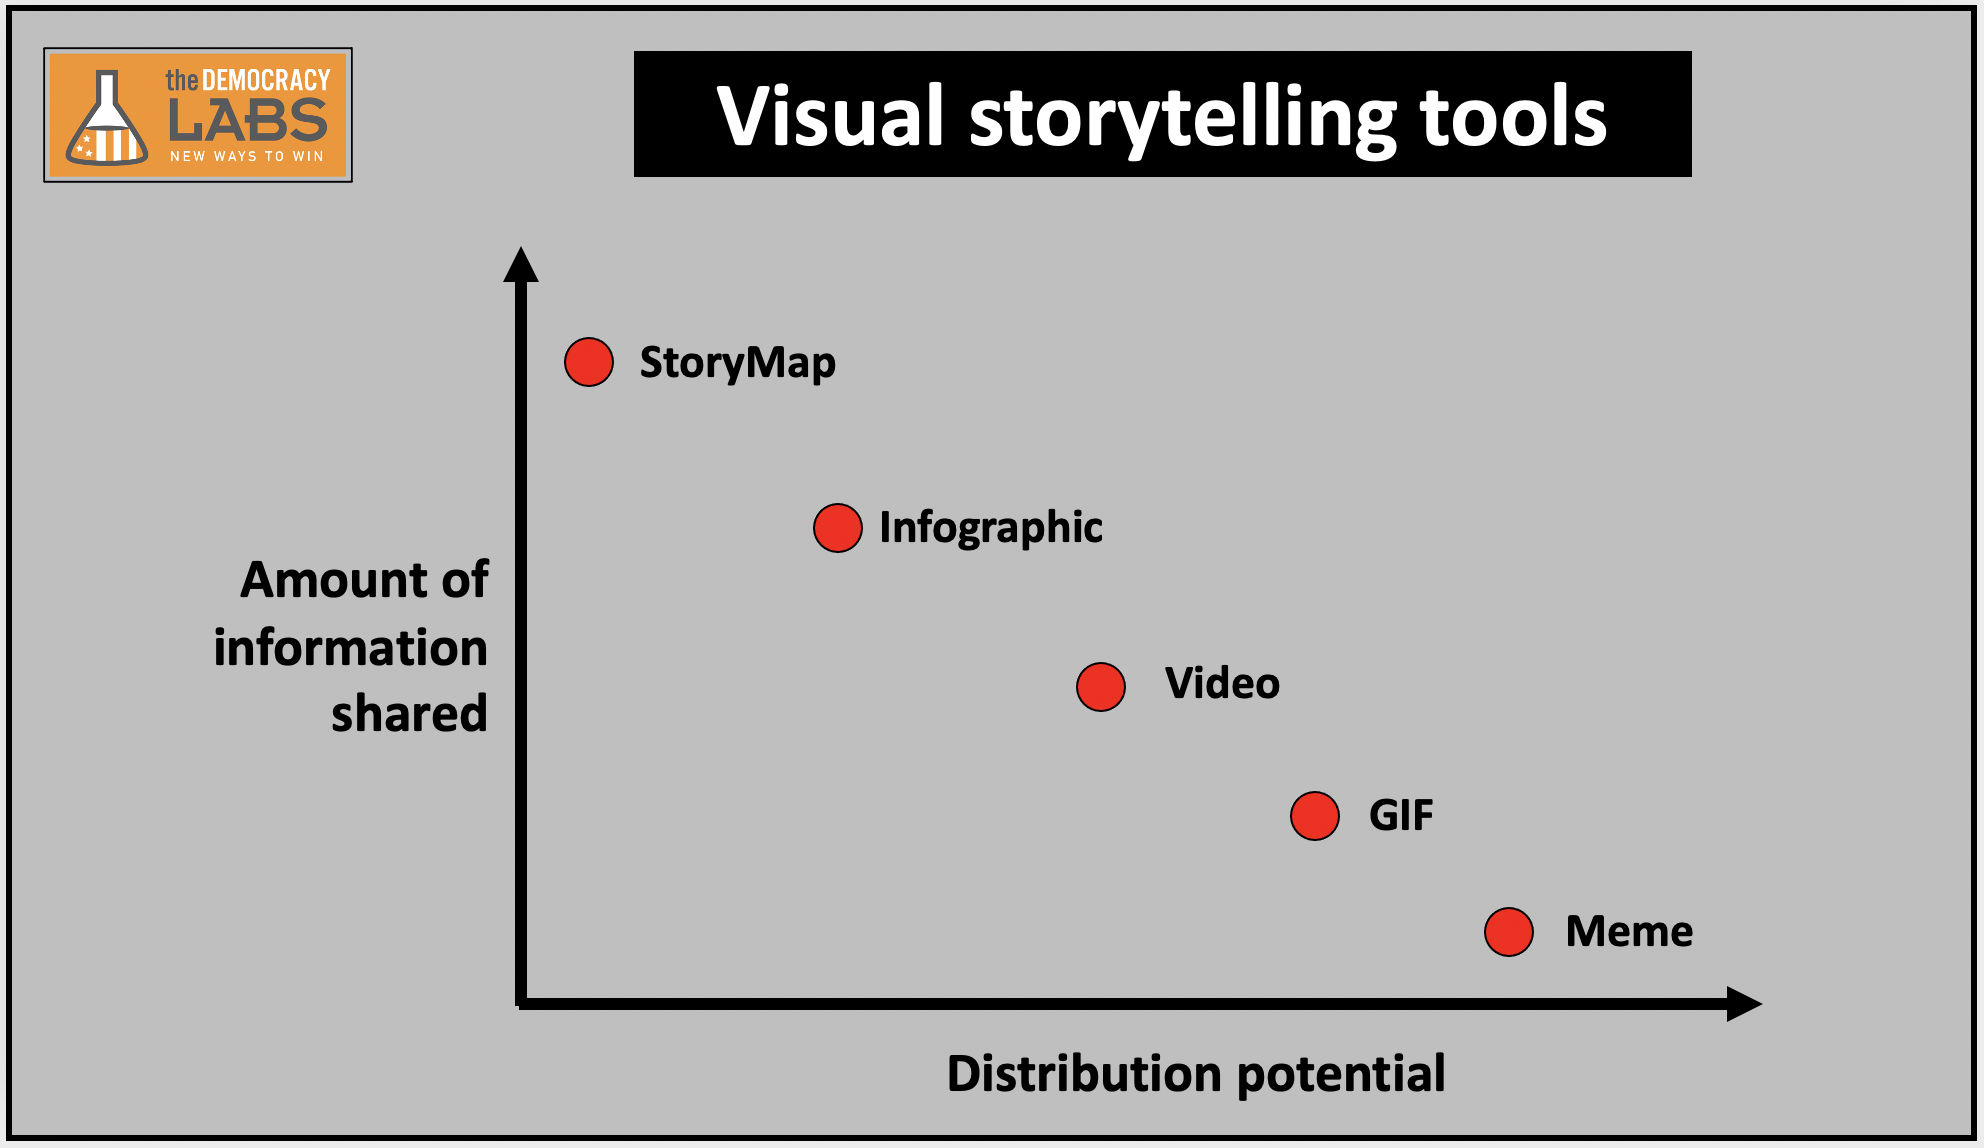 Choose the visual storytelling tool that is right for your objective. How much information do you have to share? How broad is your audience?